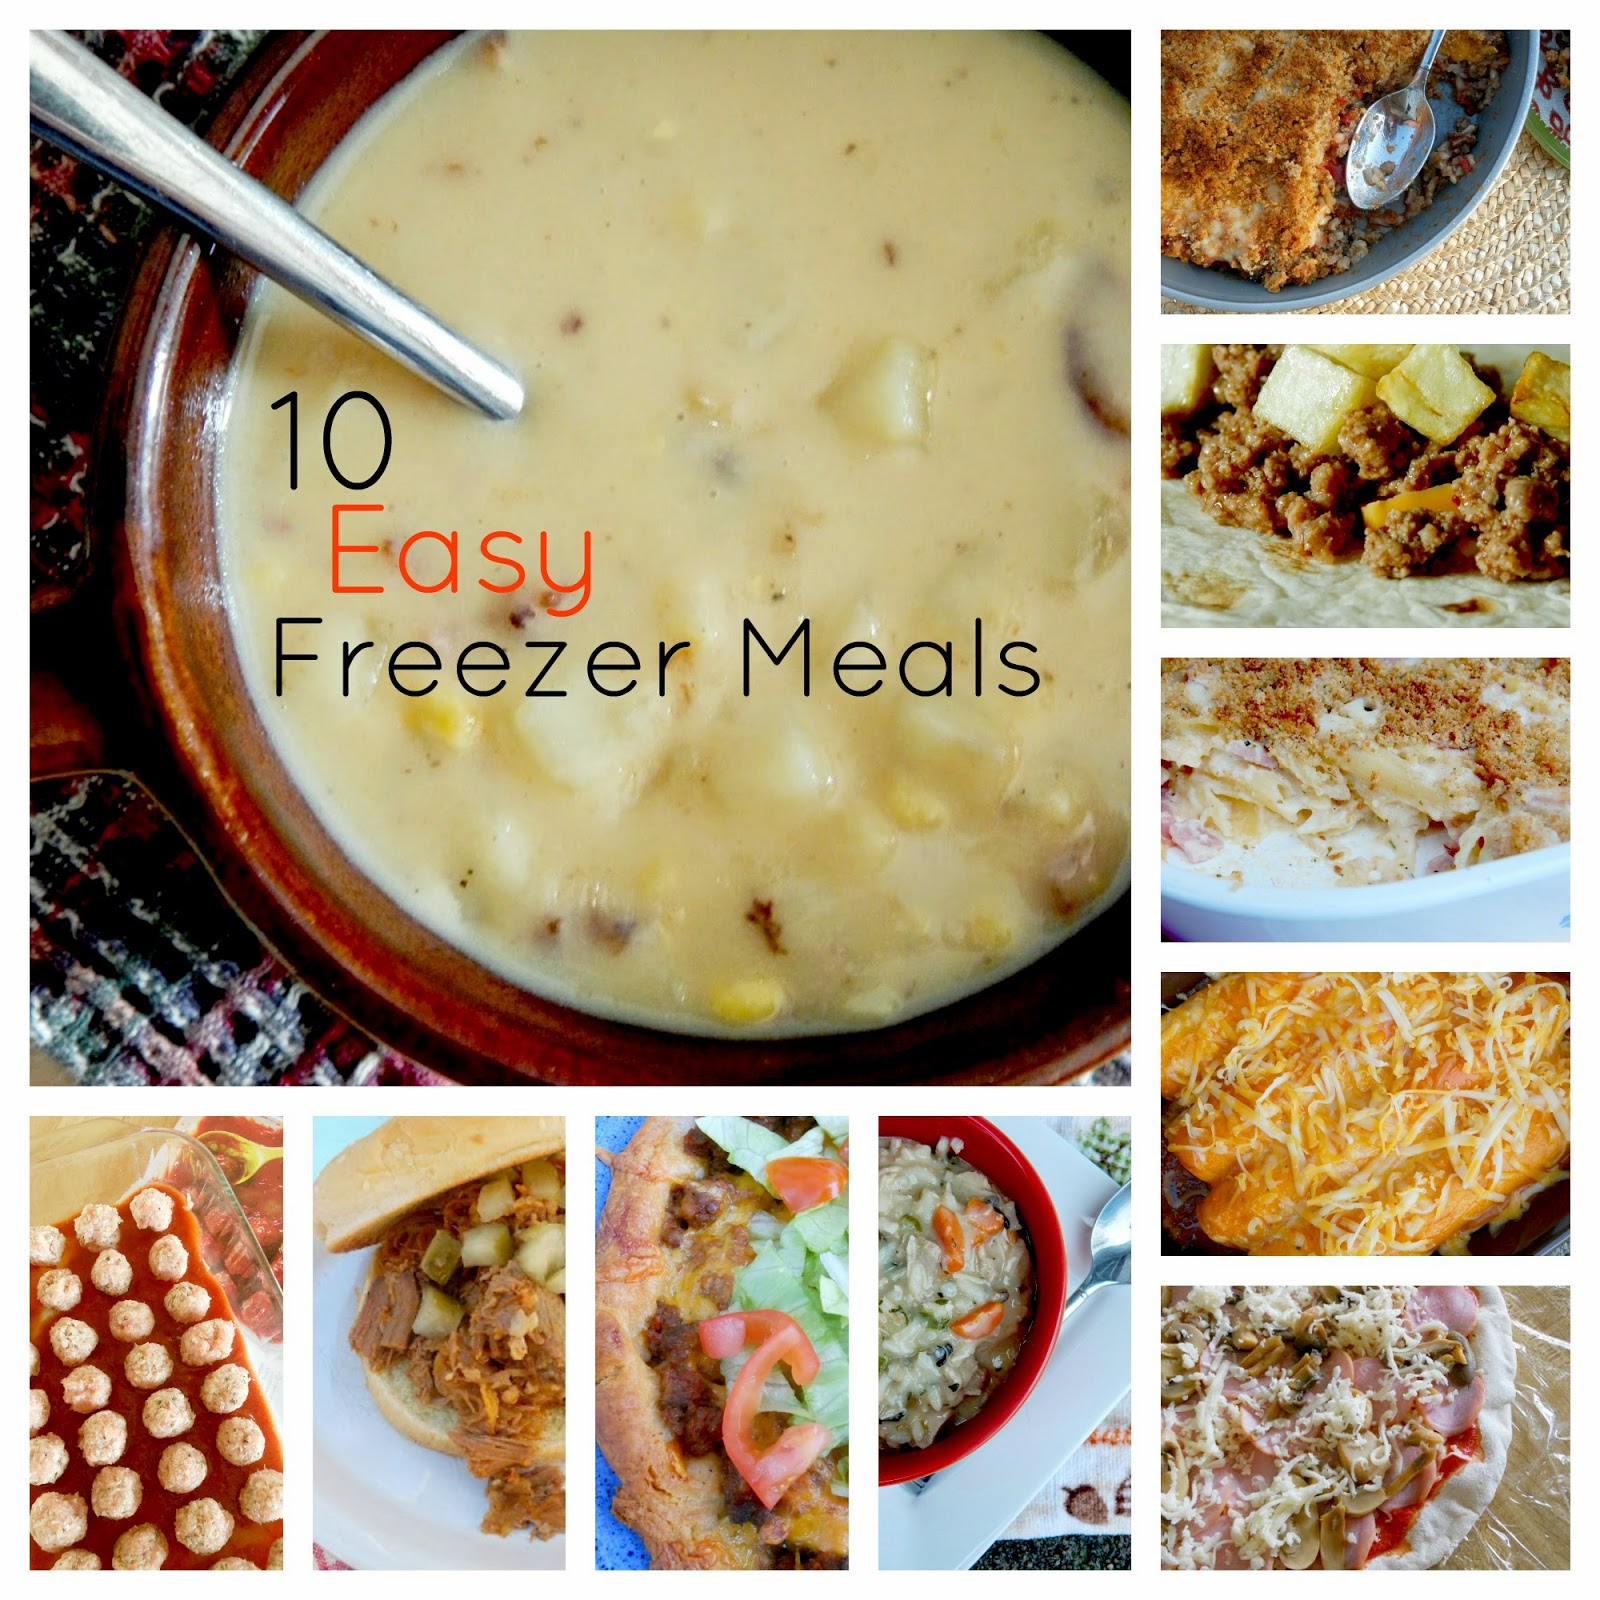 10 easy freezer meals (sweetandsavoryfood.com)